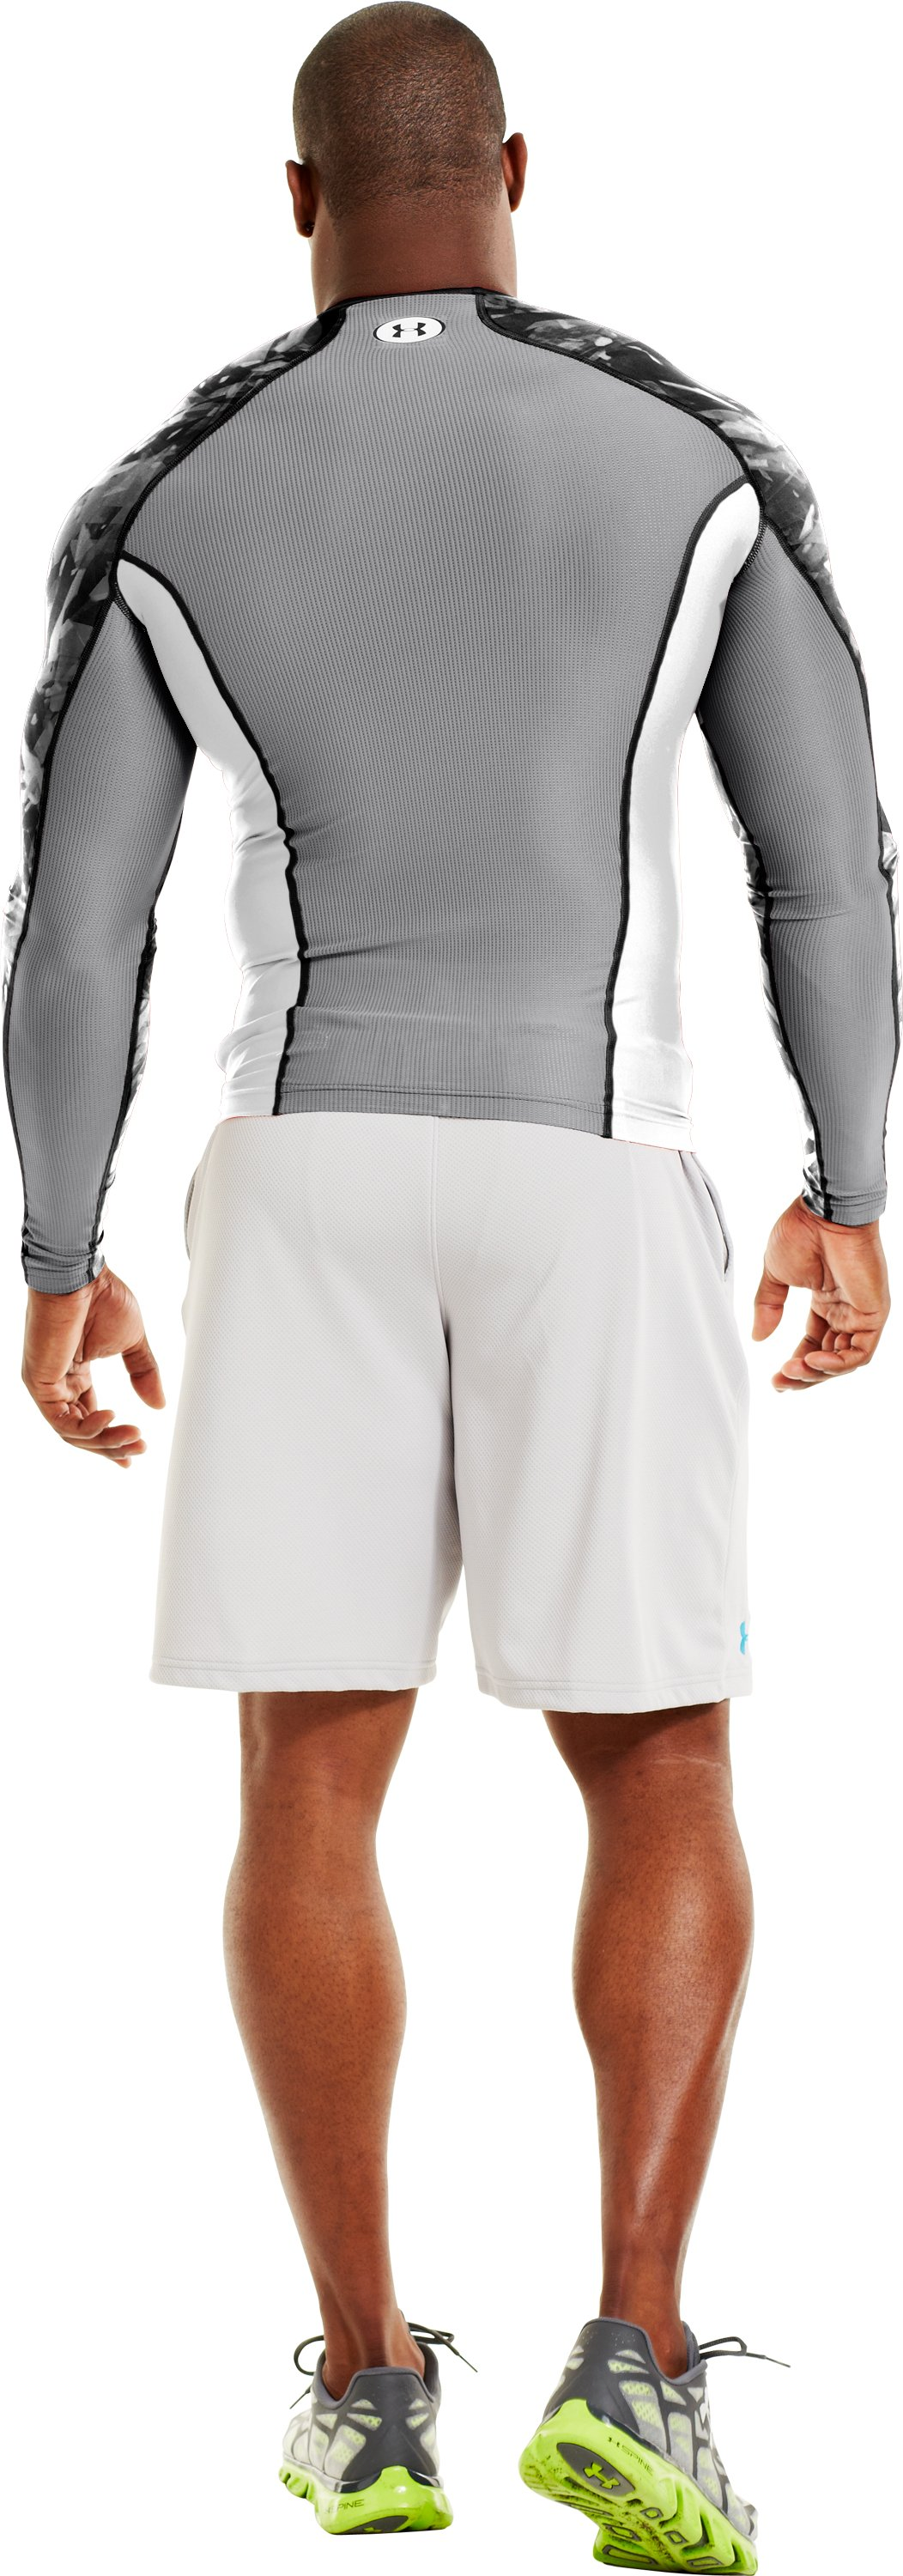 Men's NFL Combine Authentic Compression Long Sleeve, White, Back